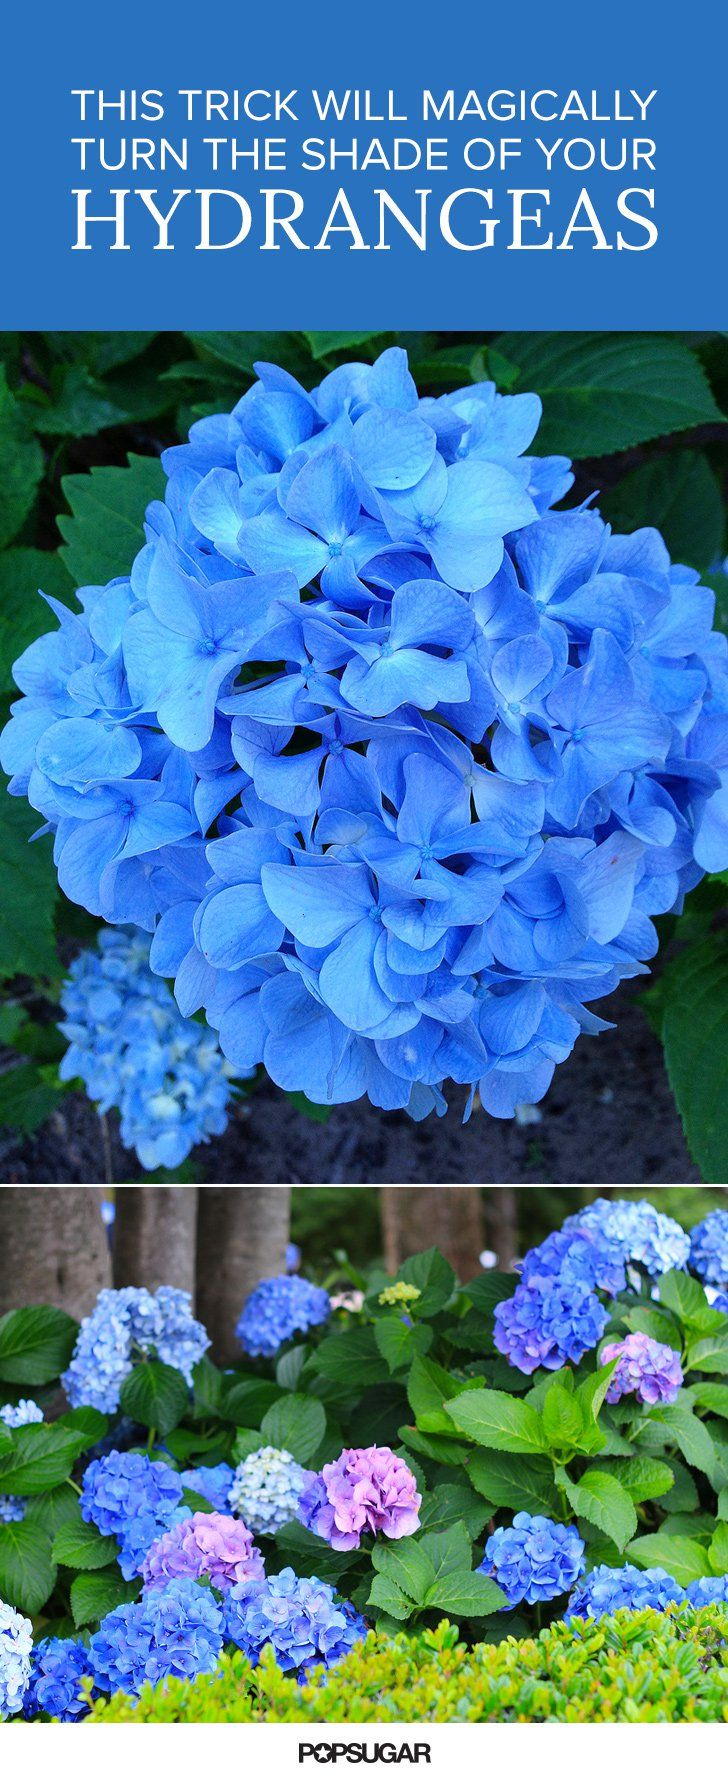 Pin for Later: This Trick Will Magically Turn the Shade of Your Hydrangeas